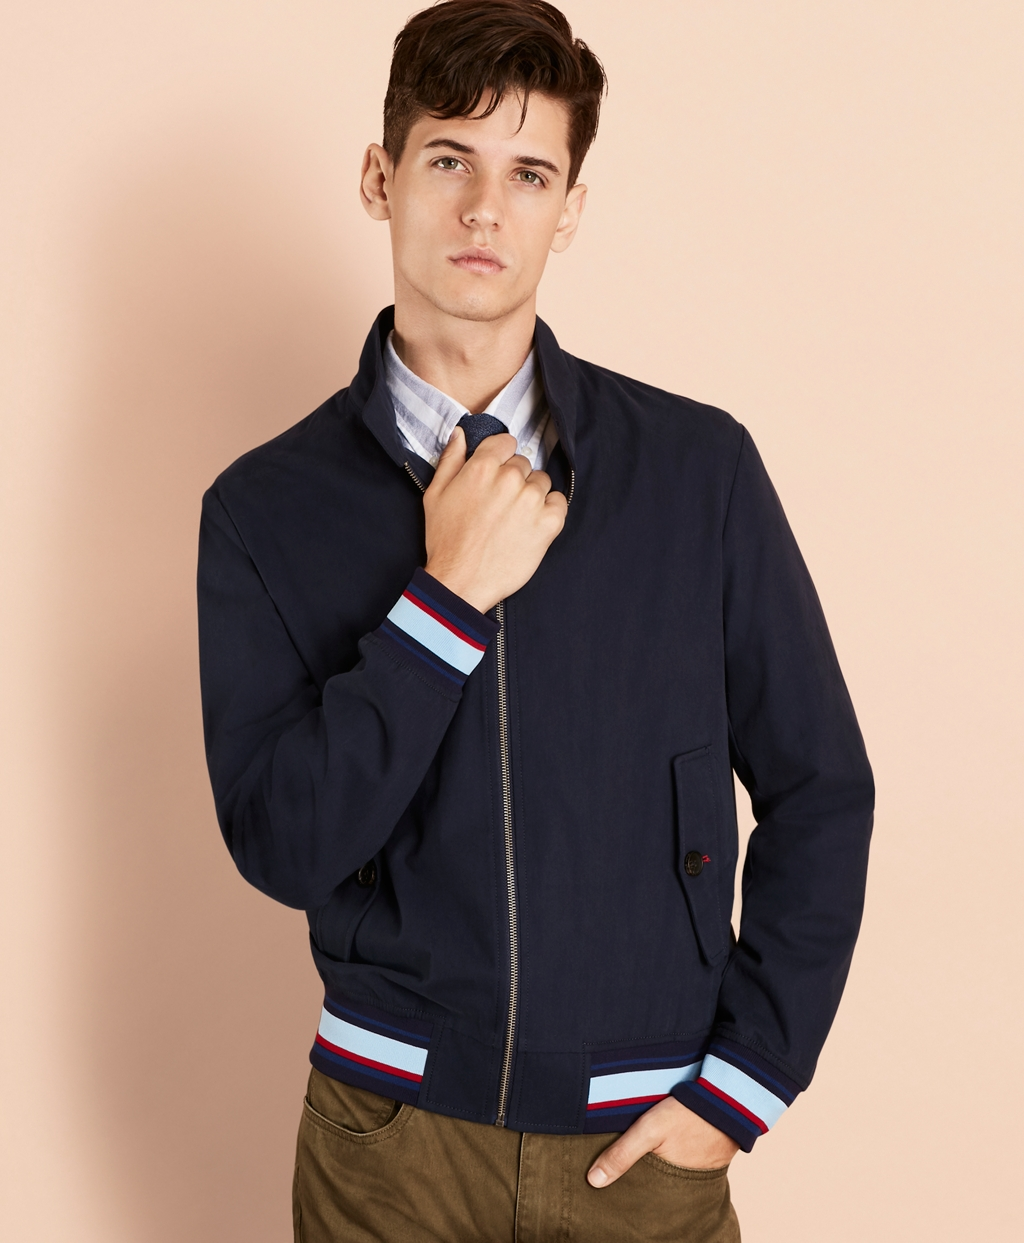 Men's Vintage Style Coats and Jackets Brooks Brothers Mens Water-Resistant Harrington Jacket $111.00 AT vintagedancer.com